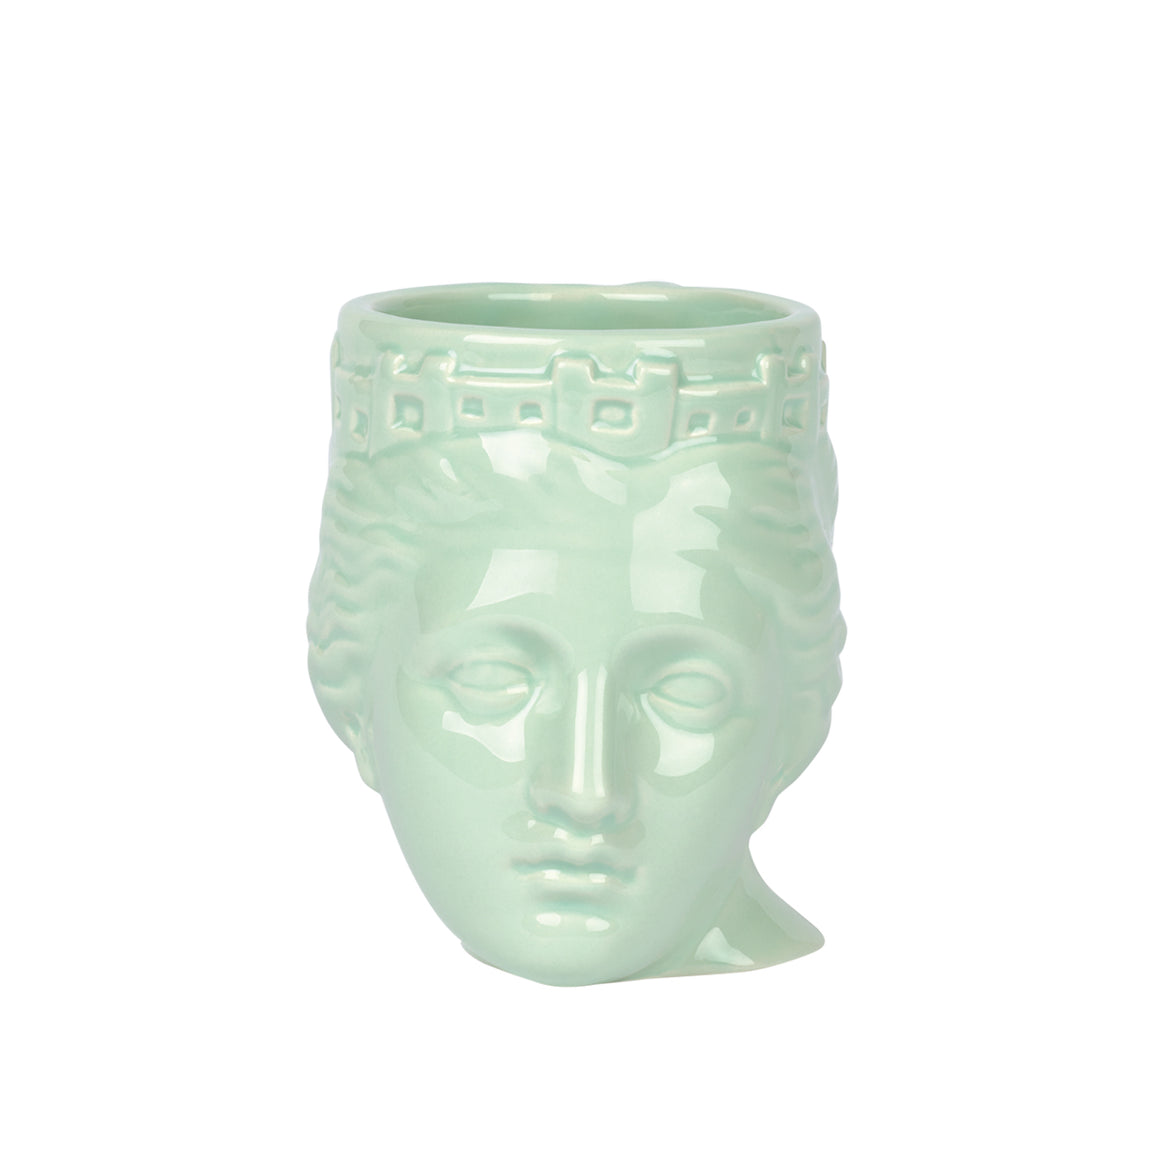 A ceramic mug in the shape of a sculptural portrait of Tyche Goddess of Luck in pastel green